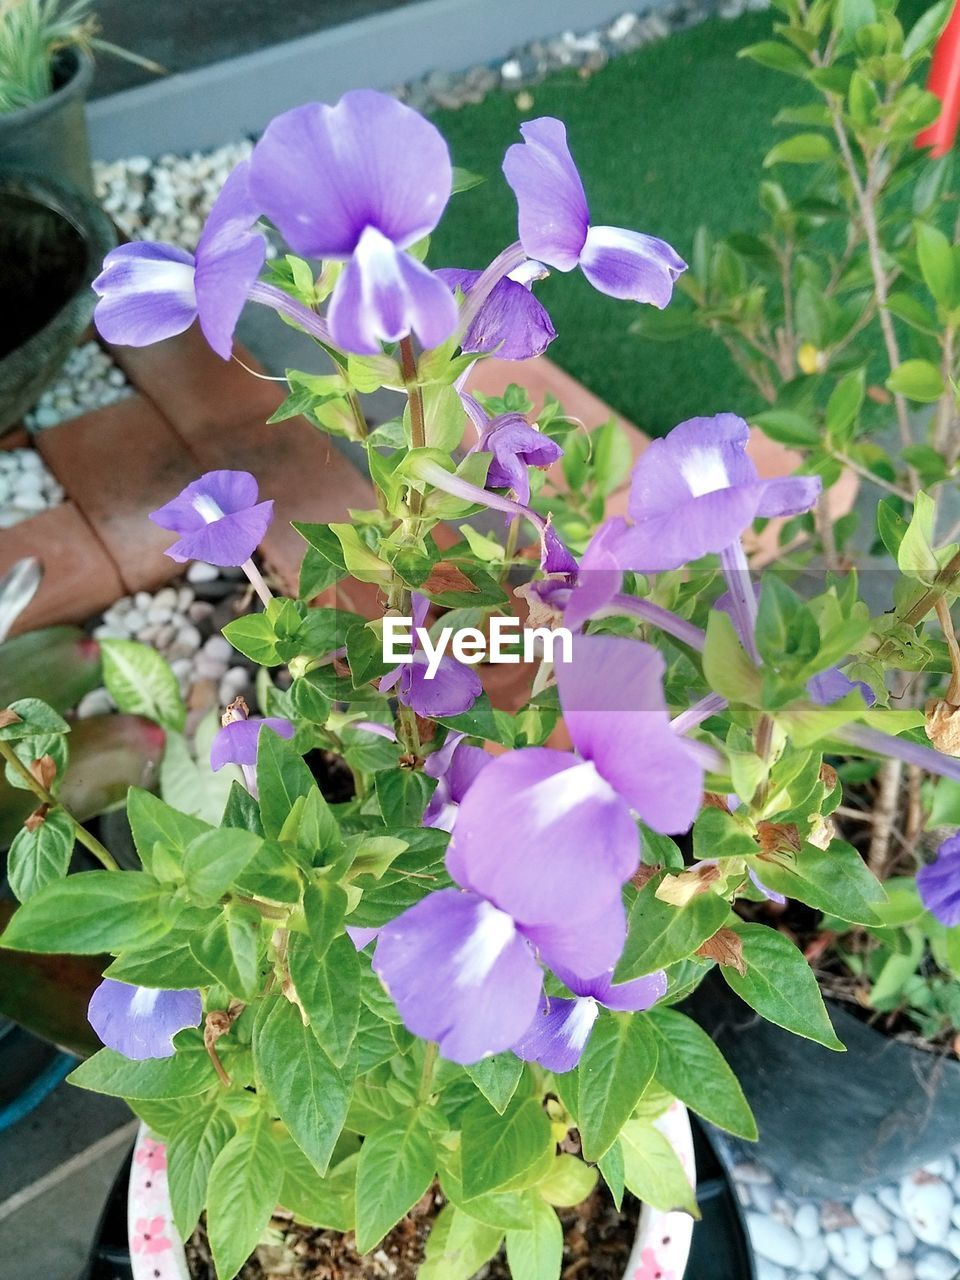 Plant Nature Growth Flower Beauty In Nature High Angle View Outdoors Fragility Petal Purple Day No People Freshness Leaf Blooming Close-up Flower Head